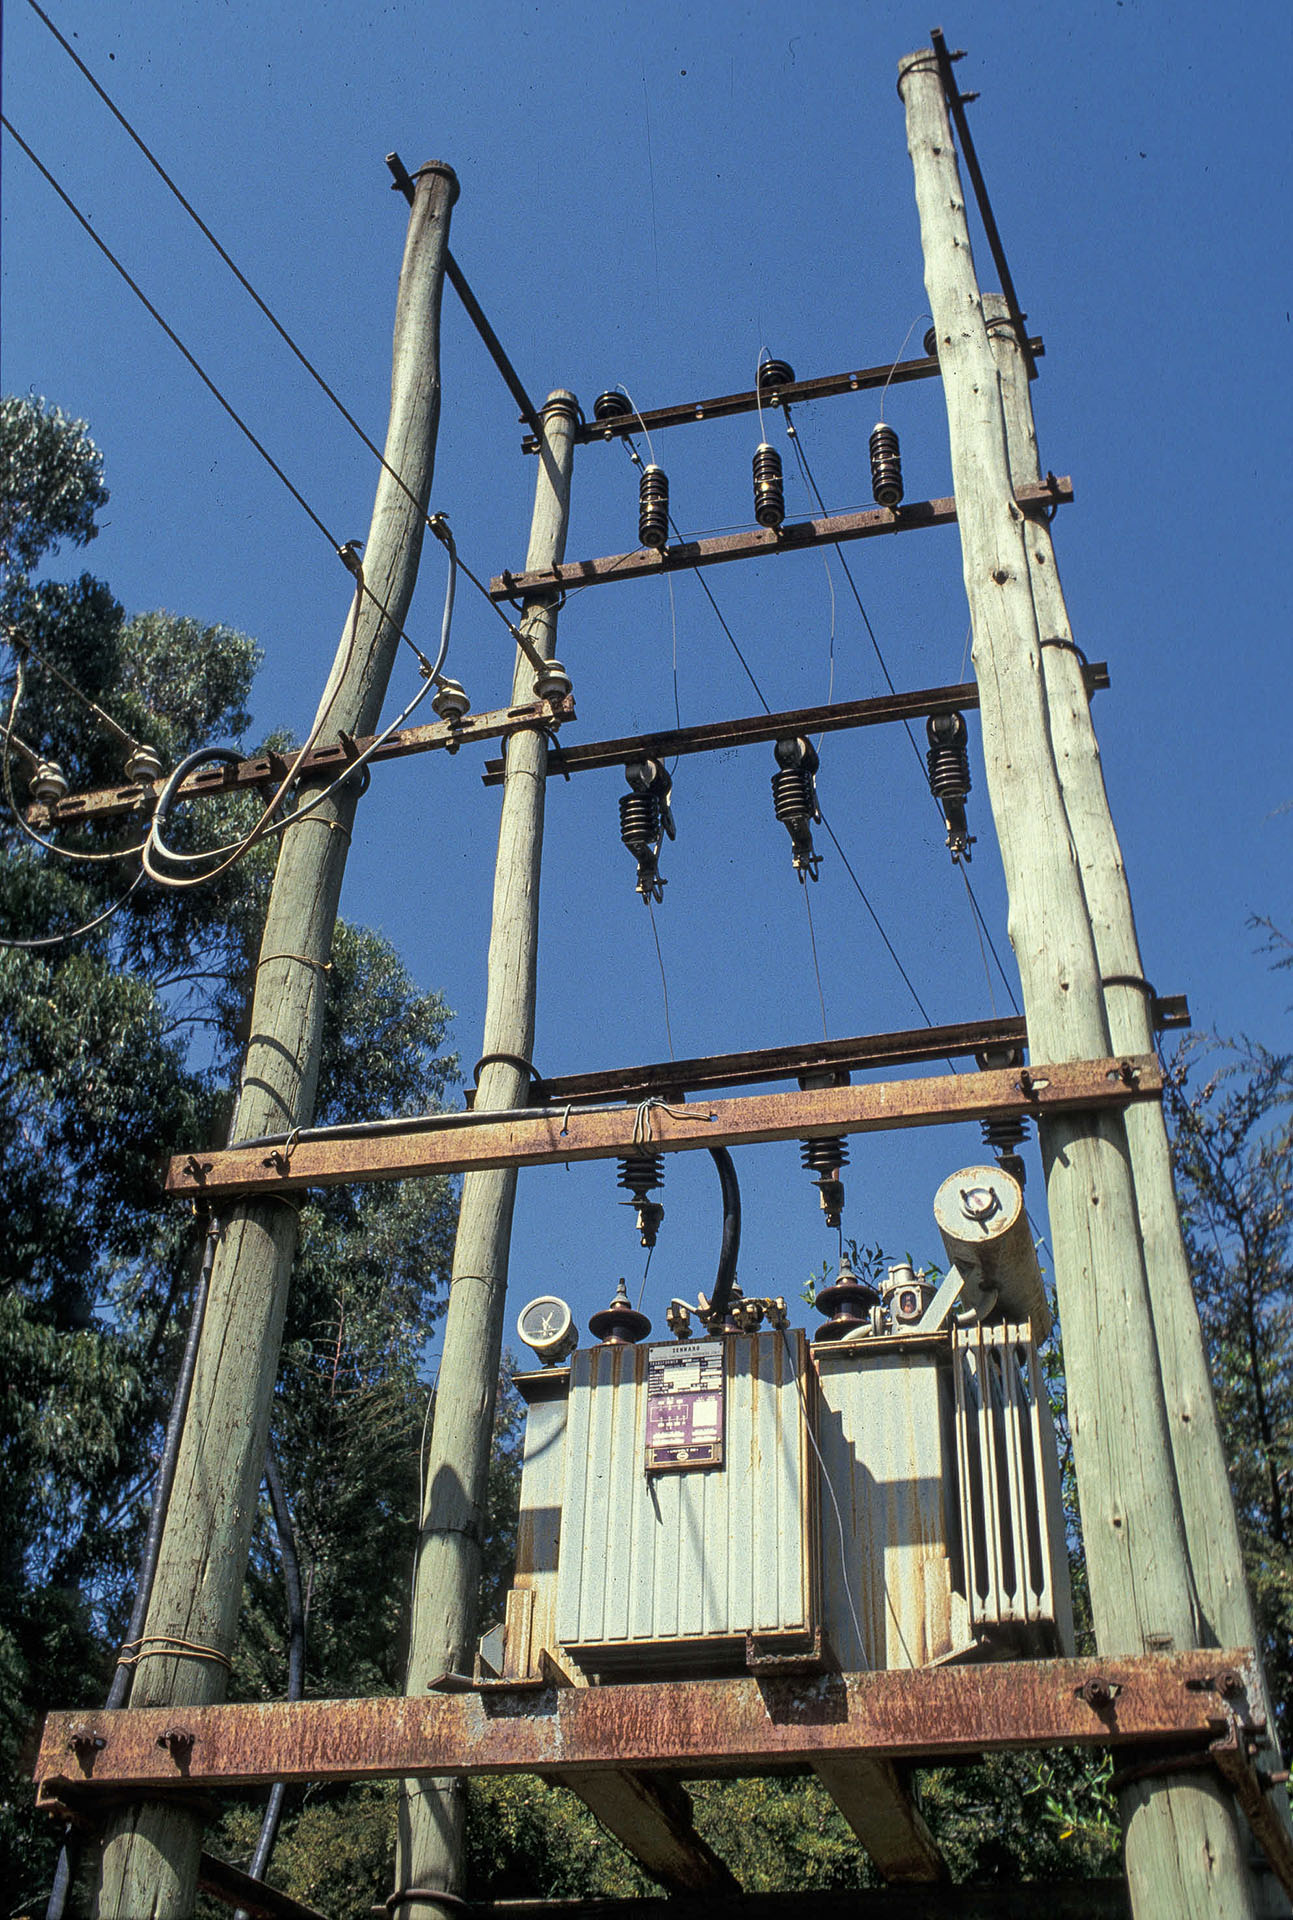 Cooking with electricity generally requires grid infrastructure to supply sufficient power